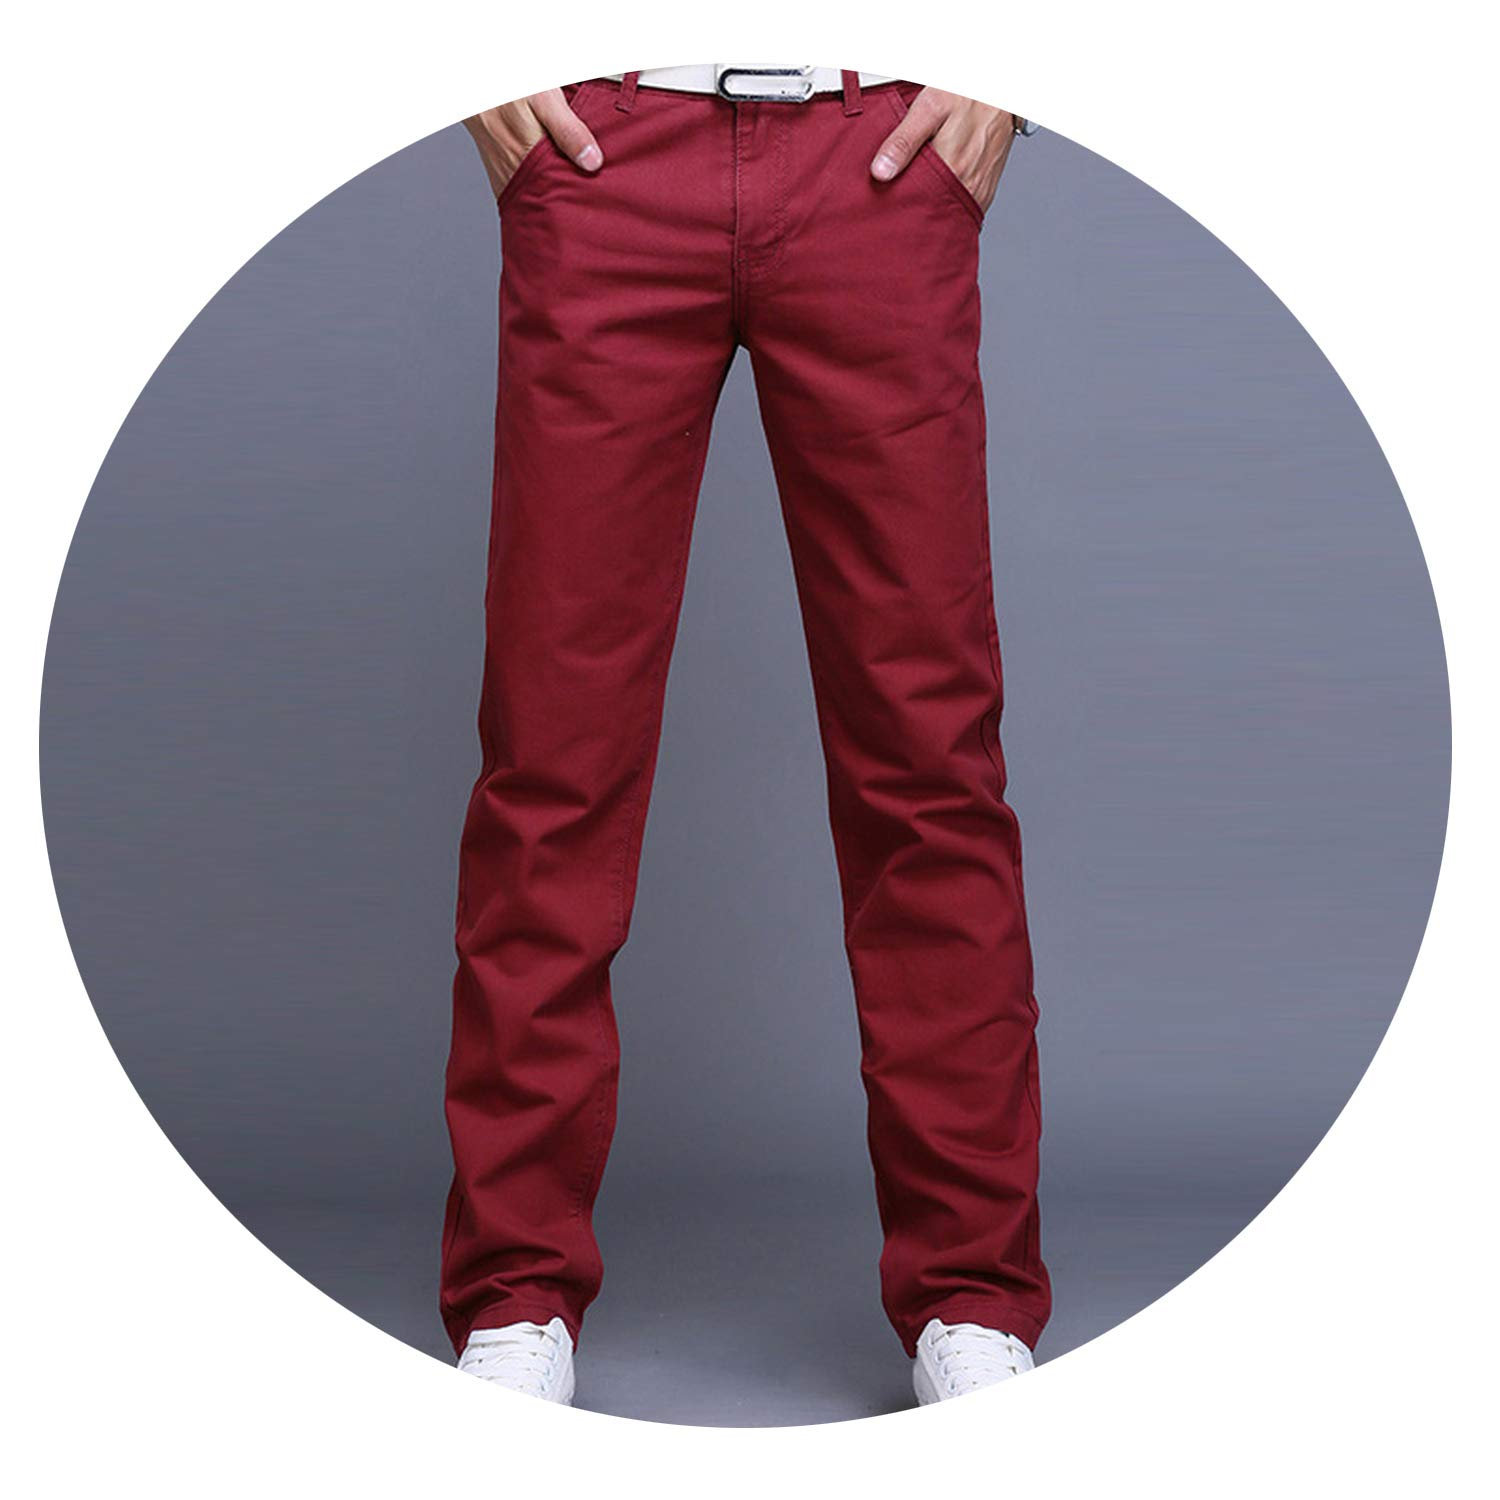 Fashion Men Business Casual Pants Cotton Slim Straight Spring Summer Long Pants,Wine Red,38